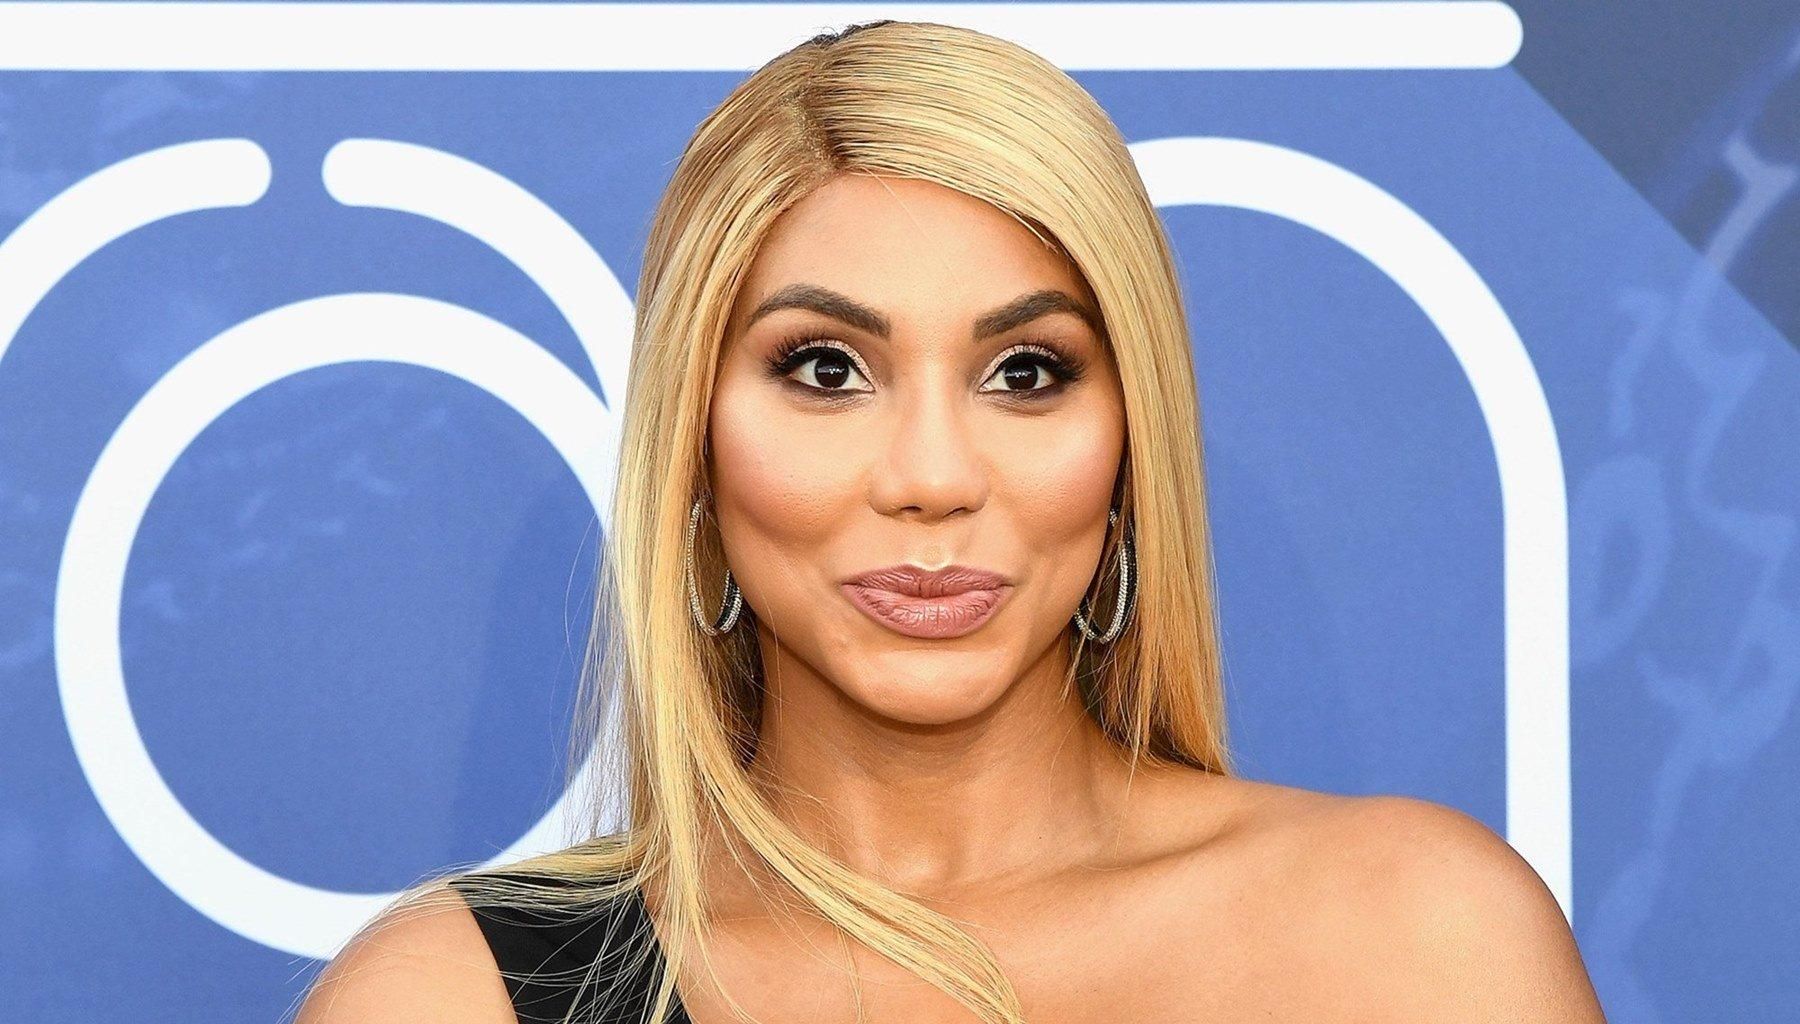 Tamar Braxton Talks About Her New Segment Called 'Ring my Bell'